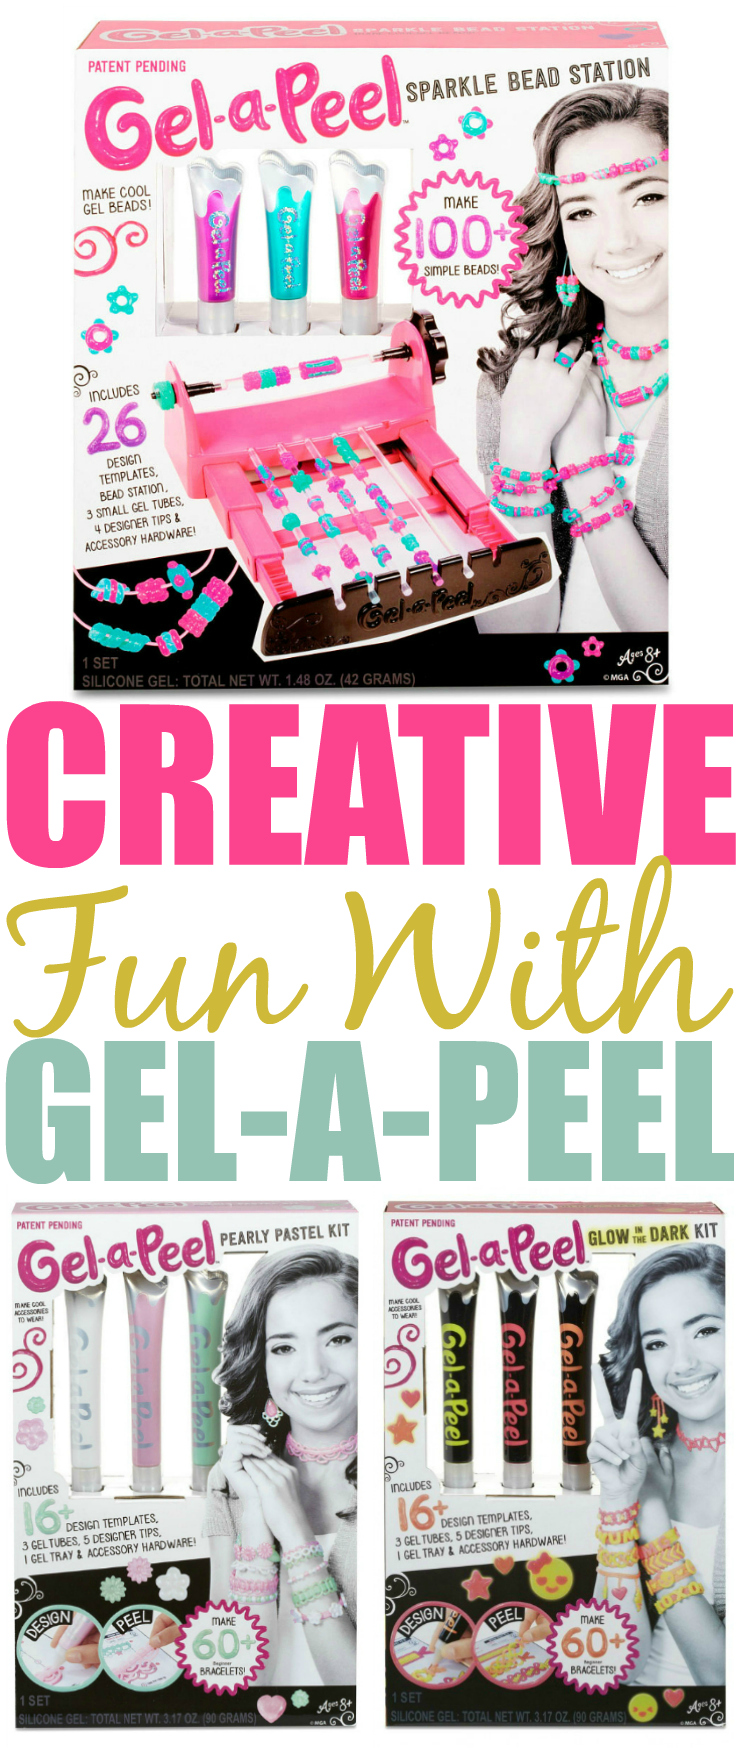 Endless Creative Fun With Gel-a-Peel Pinterest